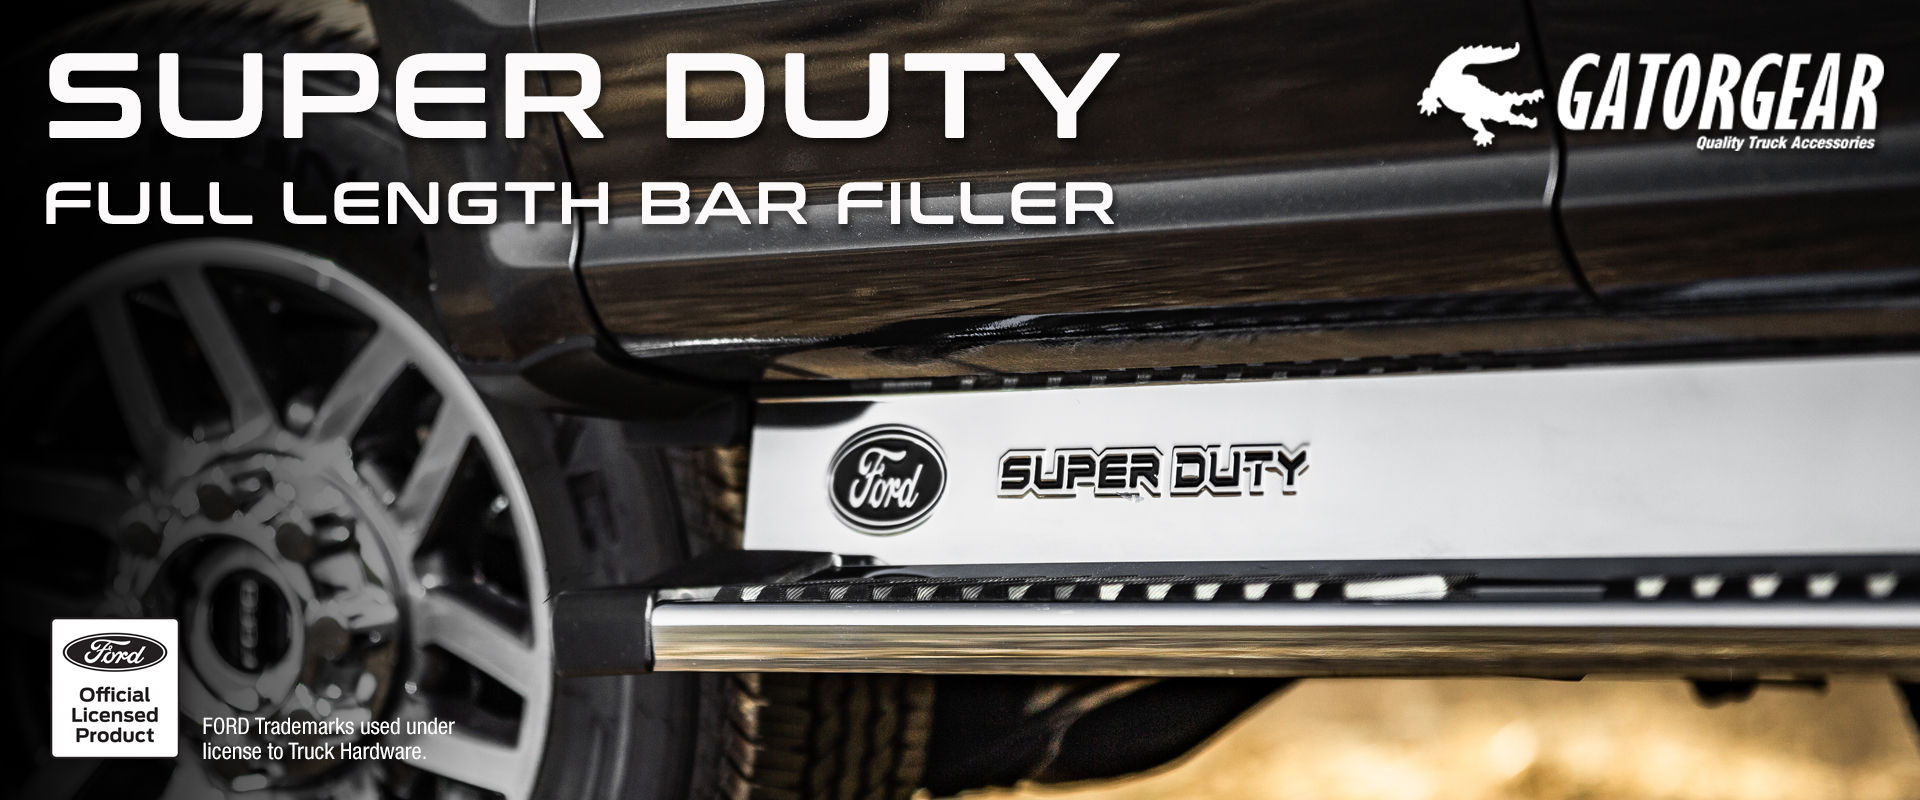 2019 Ford Super Duty Step Bar Fillers